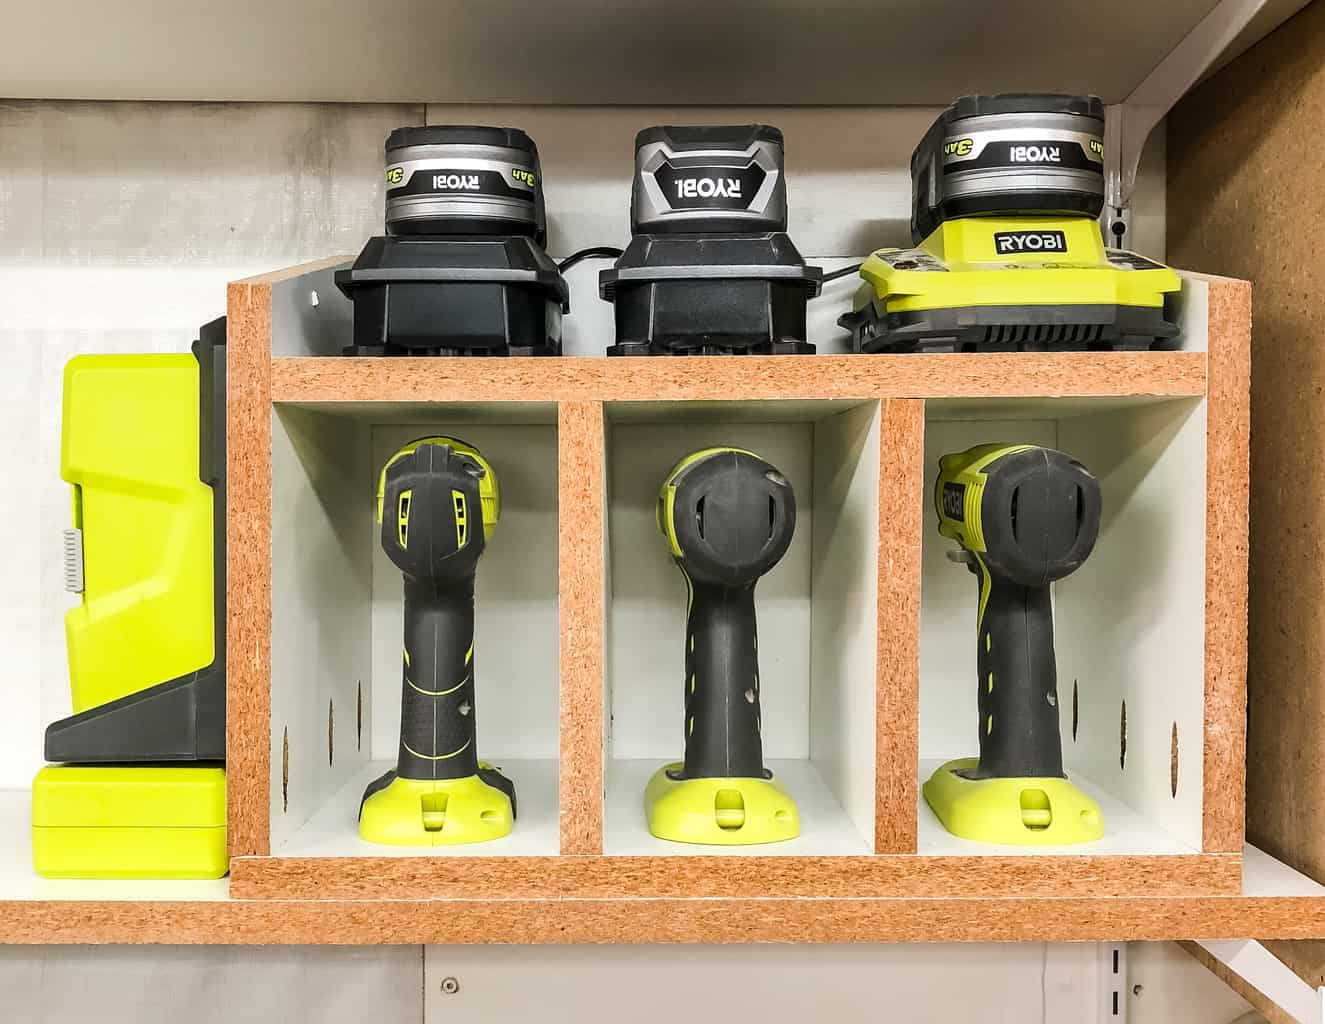 DIY cordless drill storage rack with charger shelf and bit storage